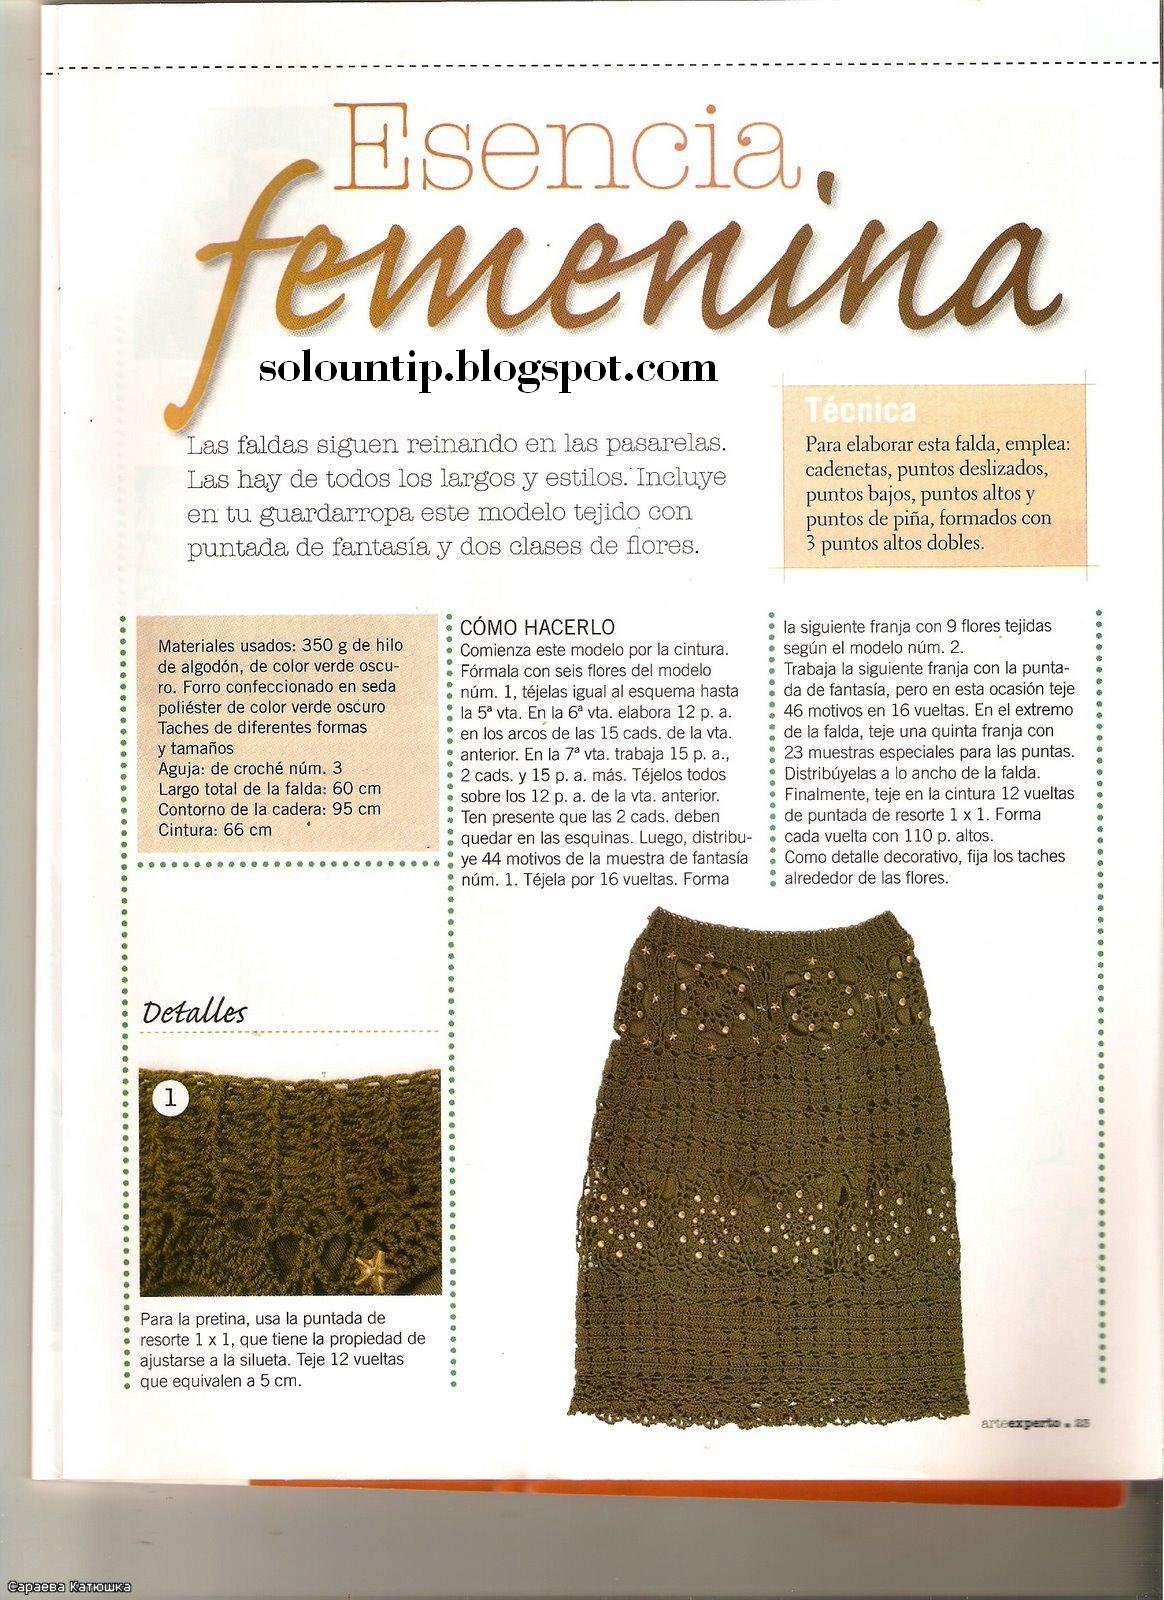 falda larga a crochet